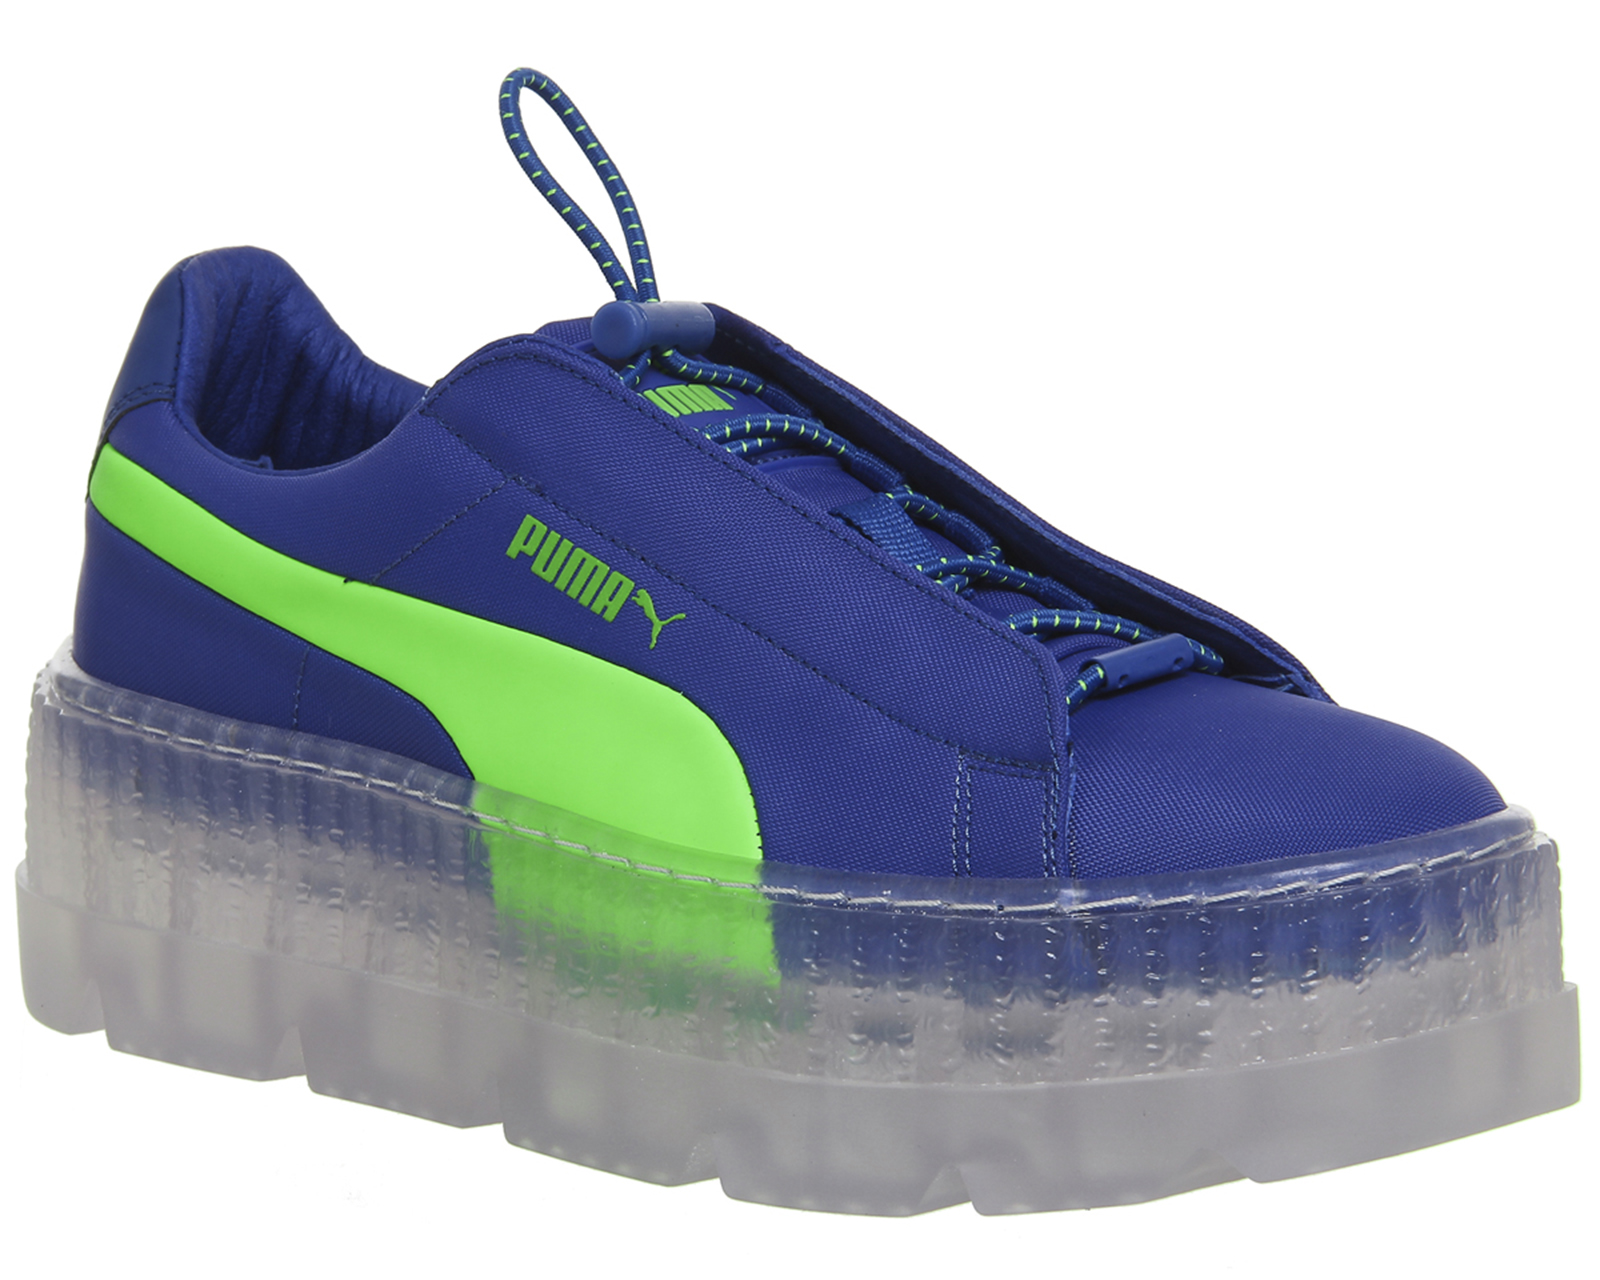 Sentinel Womens Puma Fenty Cleated Creepers SURF DAZZLING BLUE GREEN  Trainers Shoes 7b68849cd